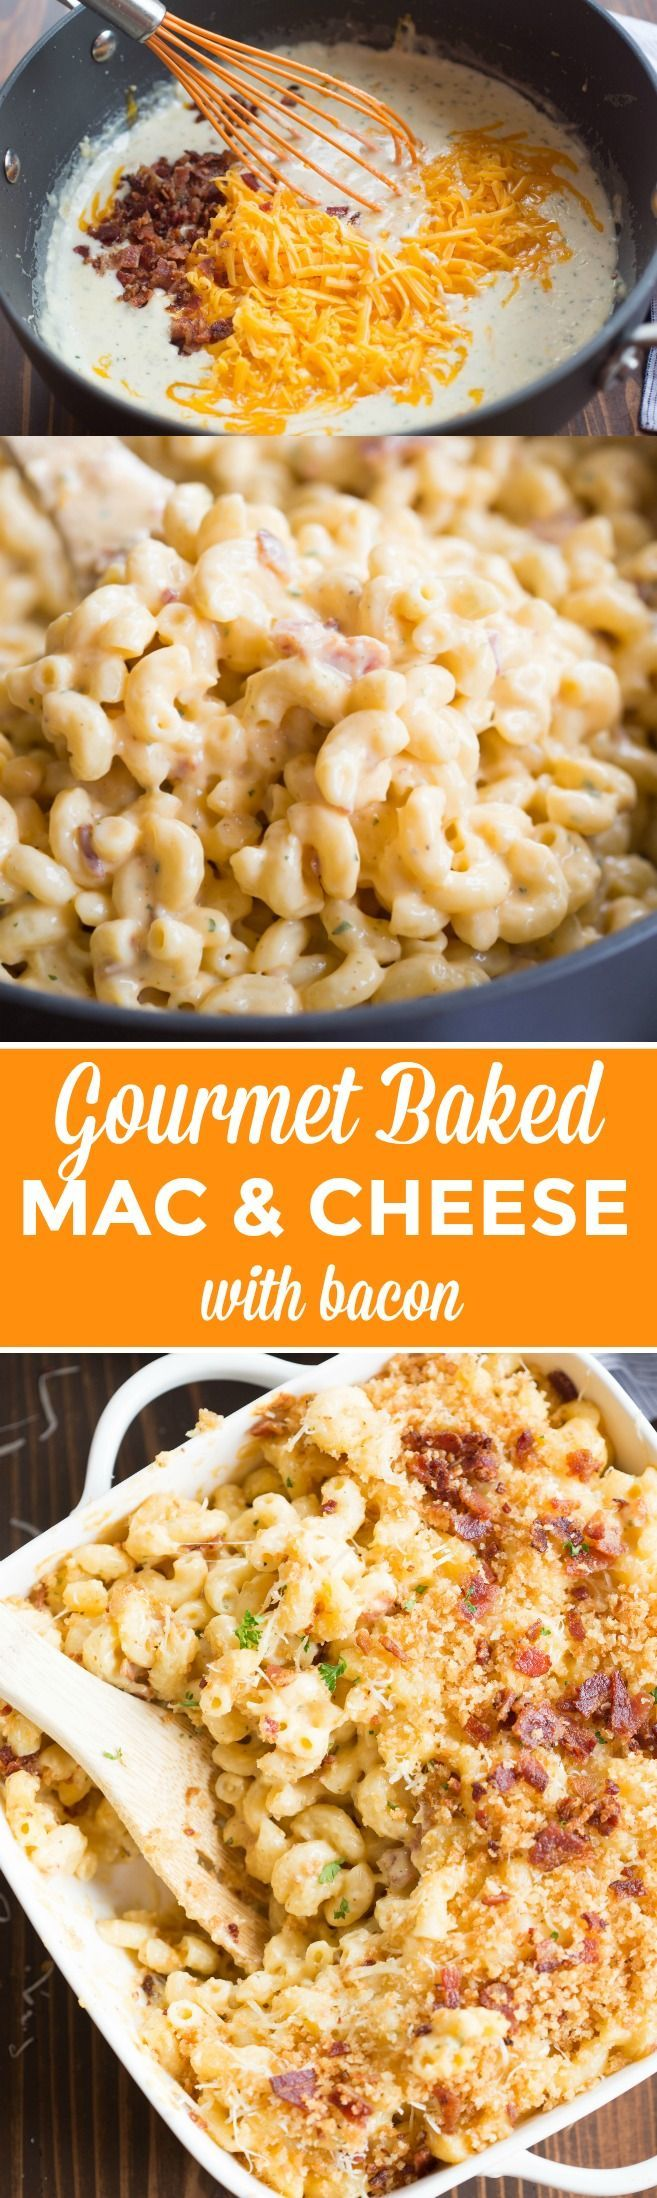 """This creamy, cheesy, GOURMET BAKED MAC AND CHEESE WITH BACON will outshine any mac and cheese you've tasted! It is """"restaurant-quality"""" AMAZING, and it couldn't be simpler to make. 